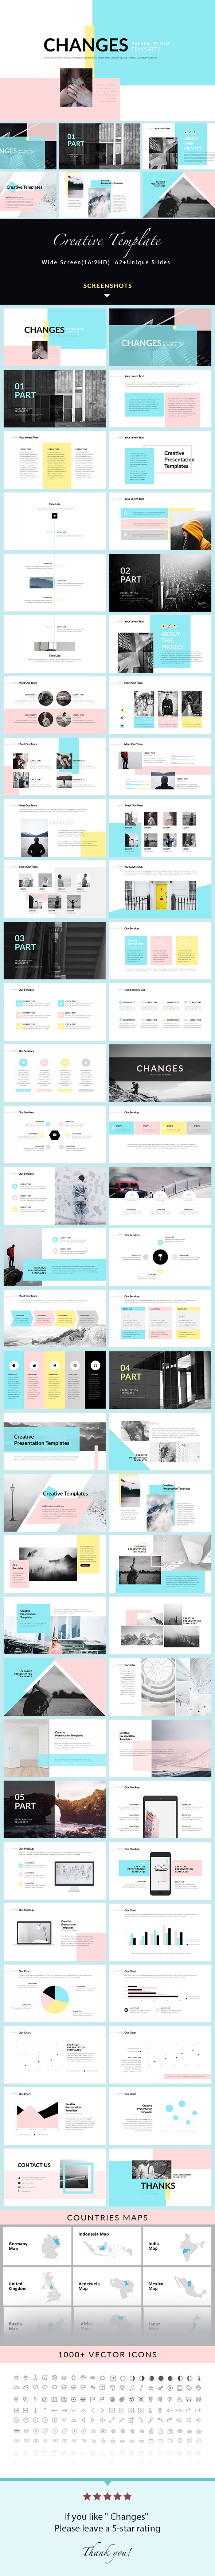 GraphicRiver Changes PowerPoint Presentation Template 20955595